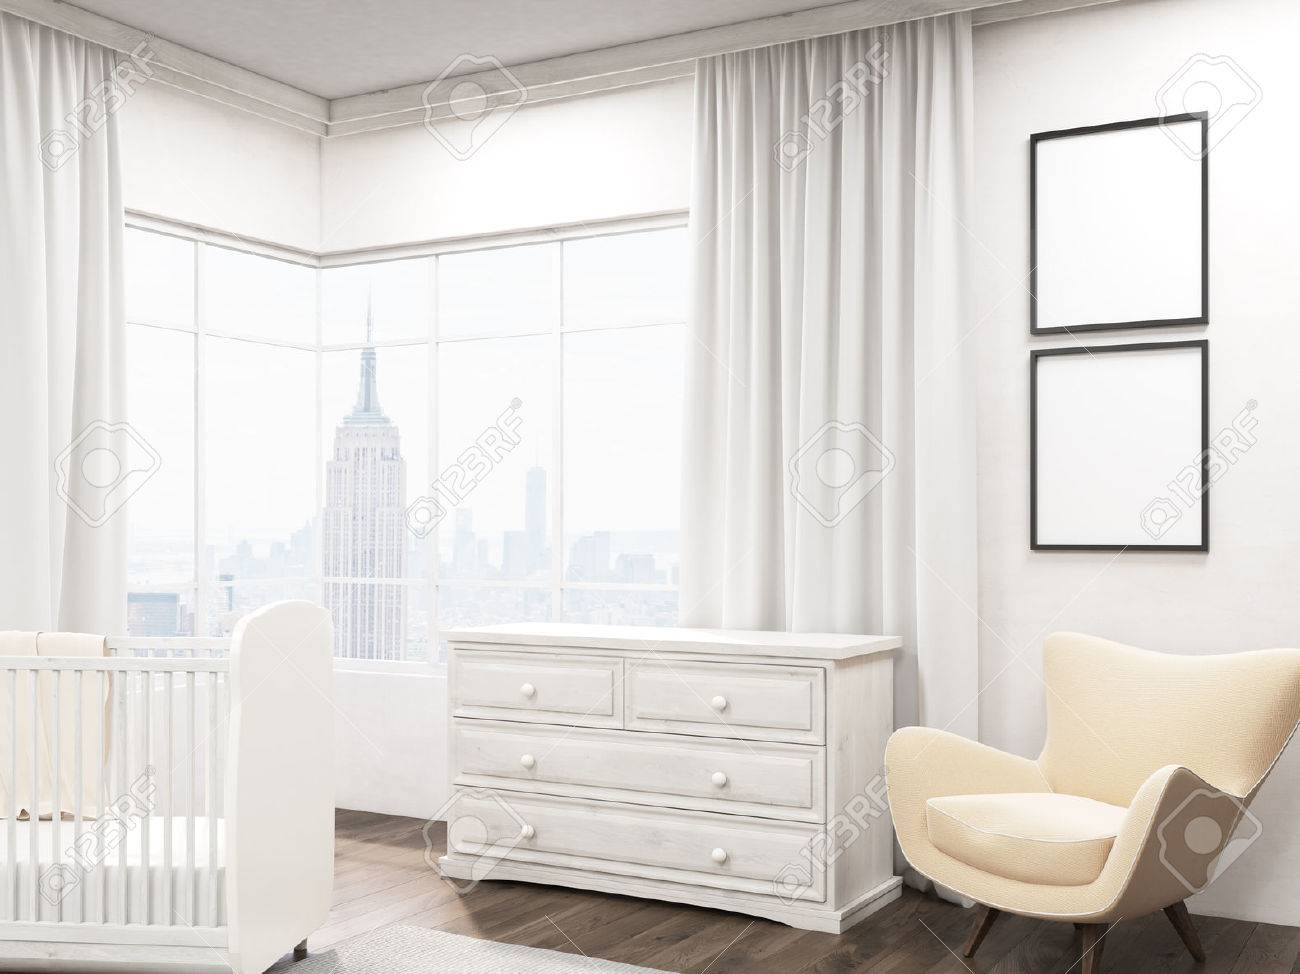 Baby room interior with new york city view two posters on walls